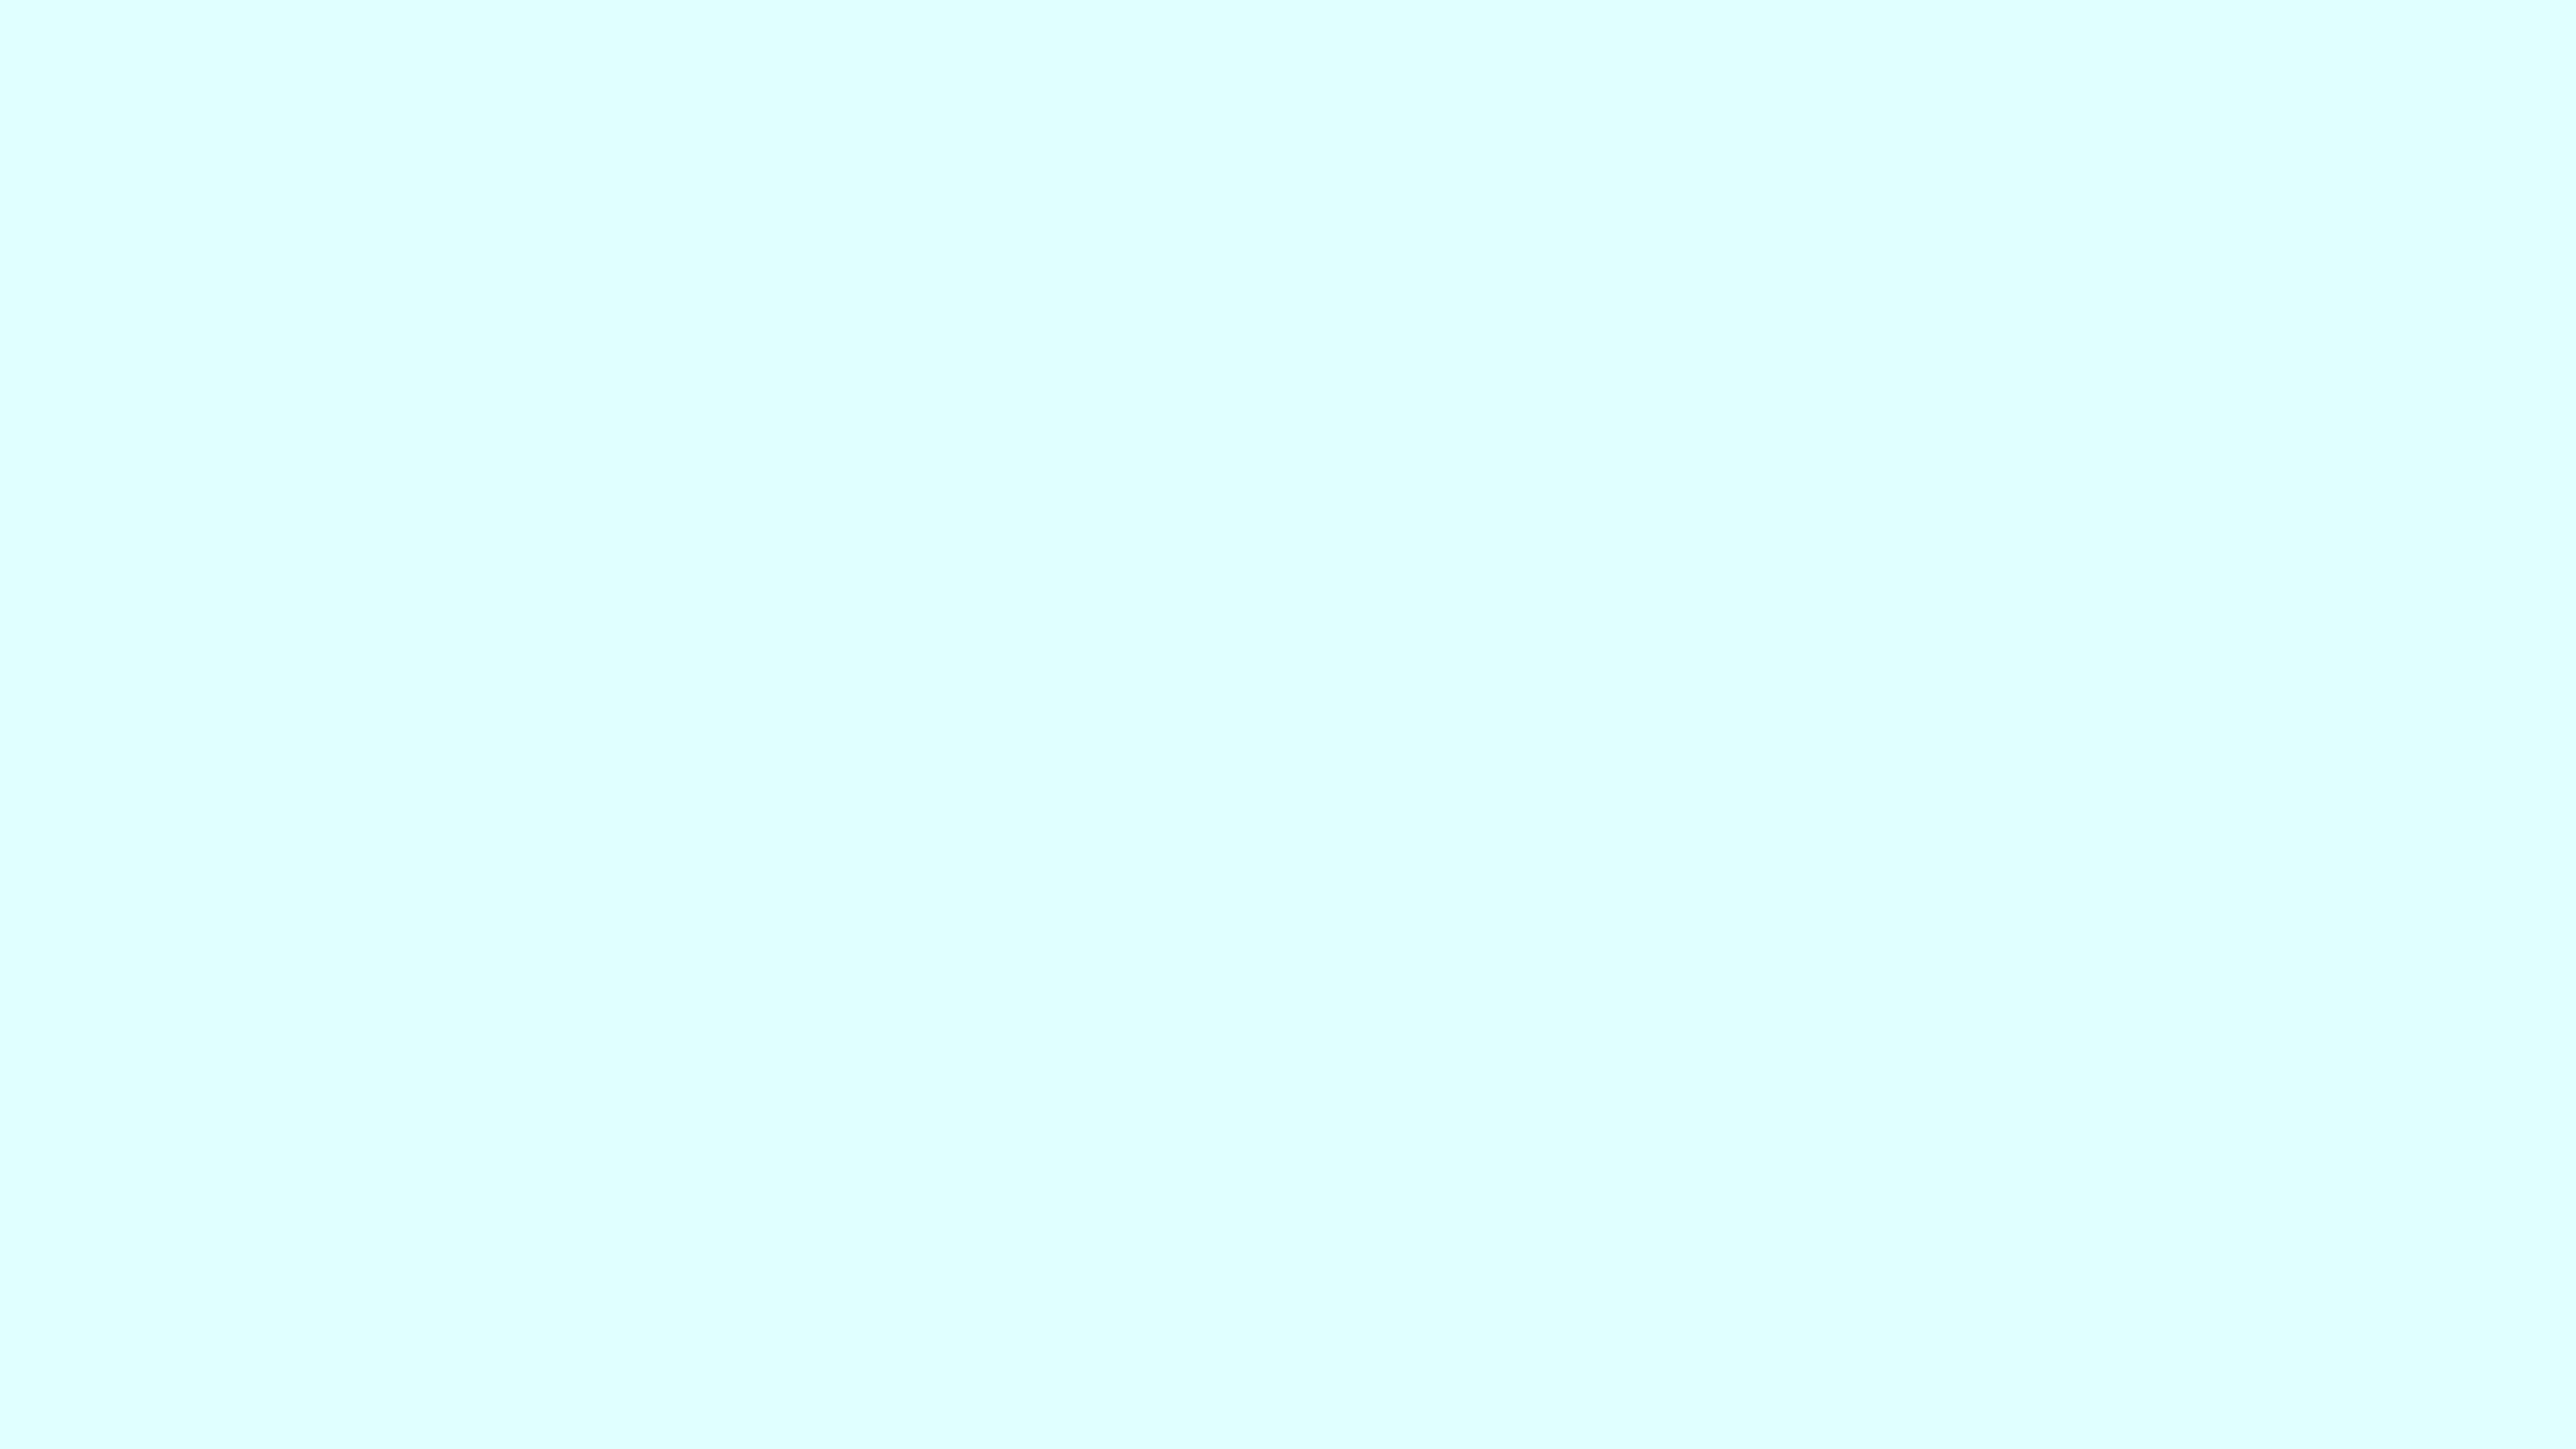 7680x4320 Light Cyan Solid Color Background